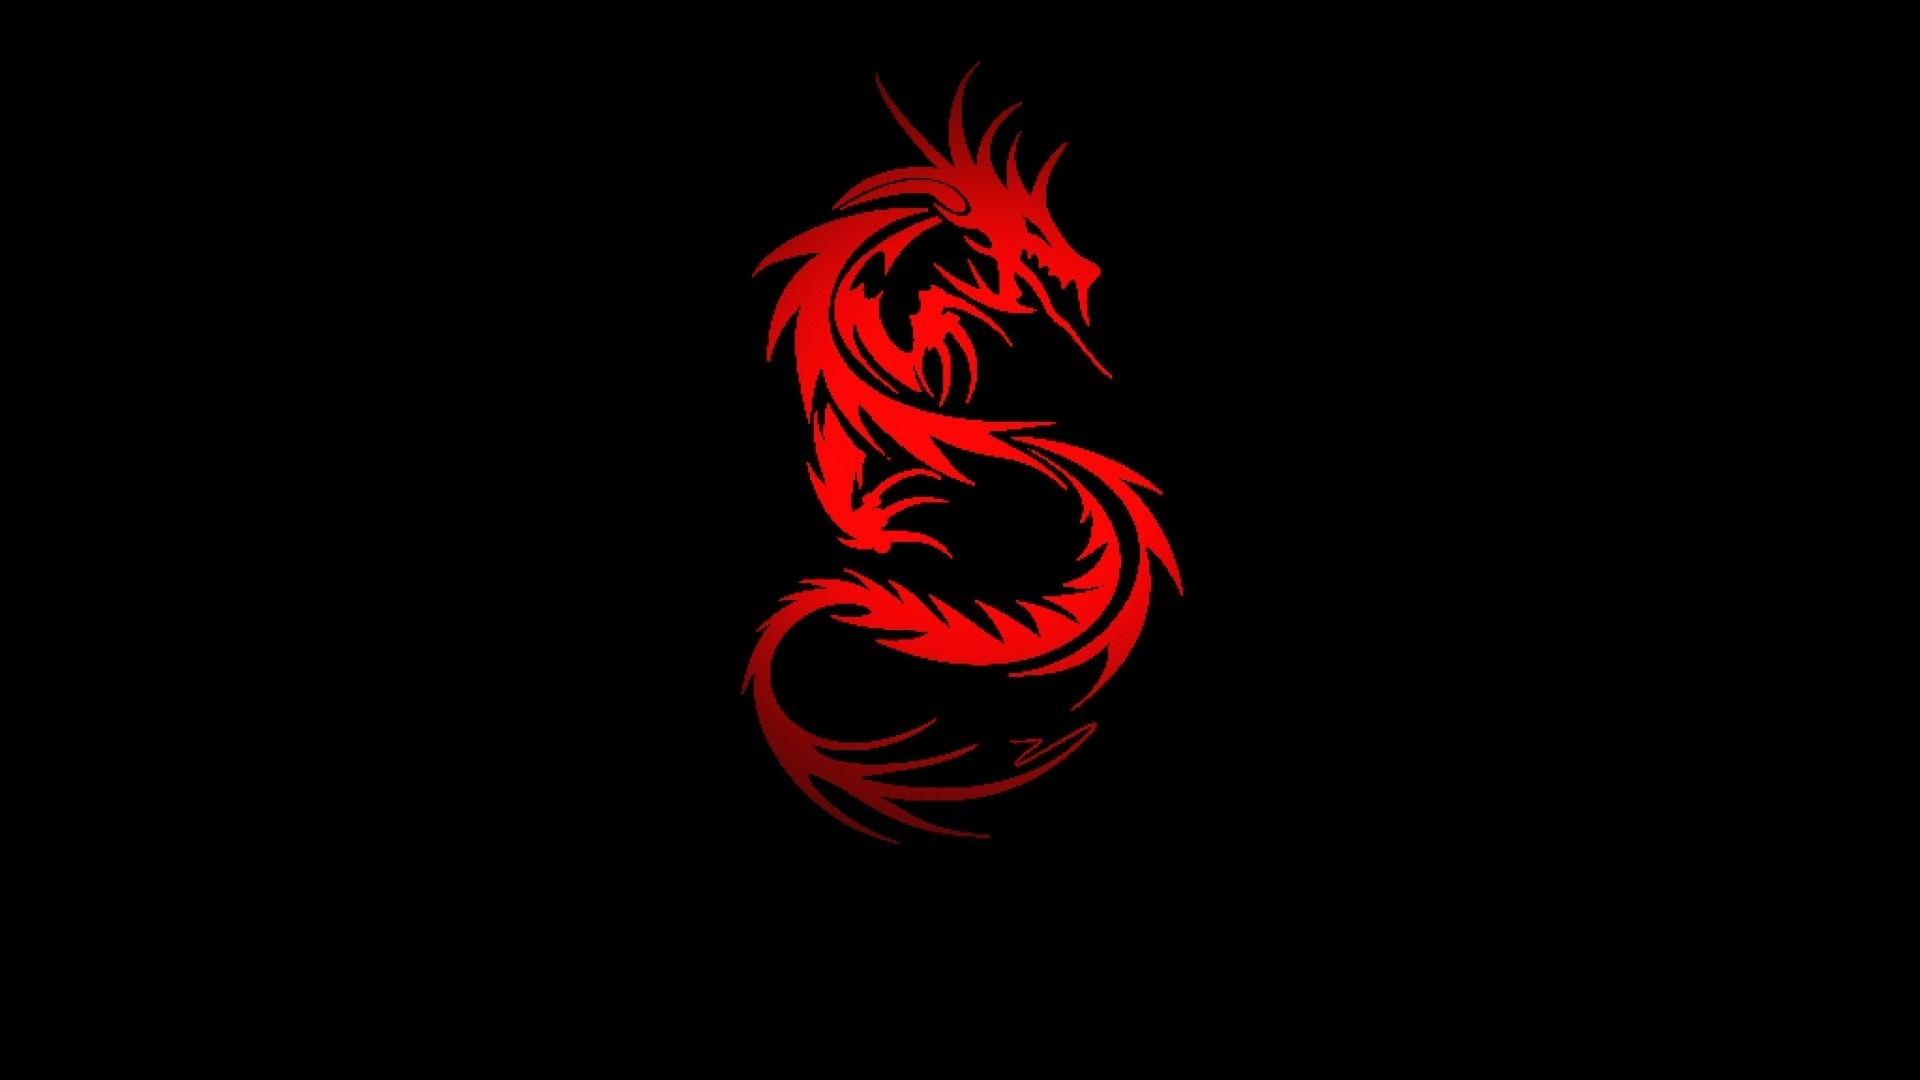 red dragon wallpaper hd (65+ images)